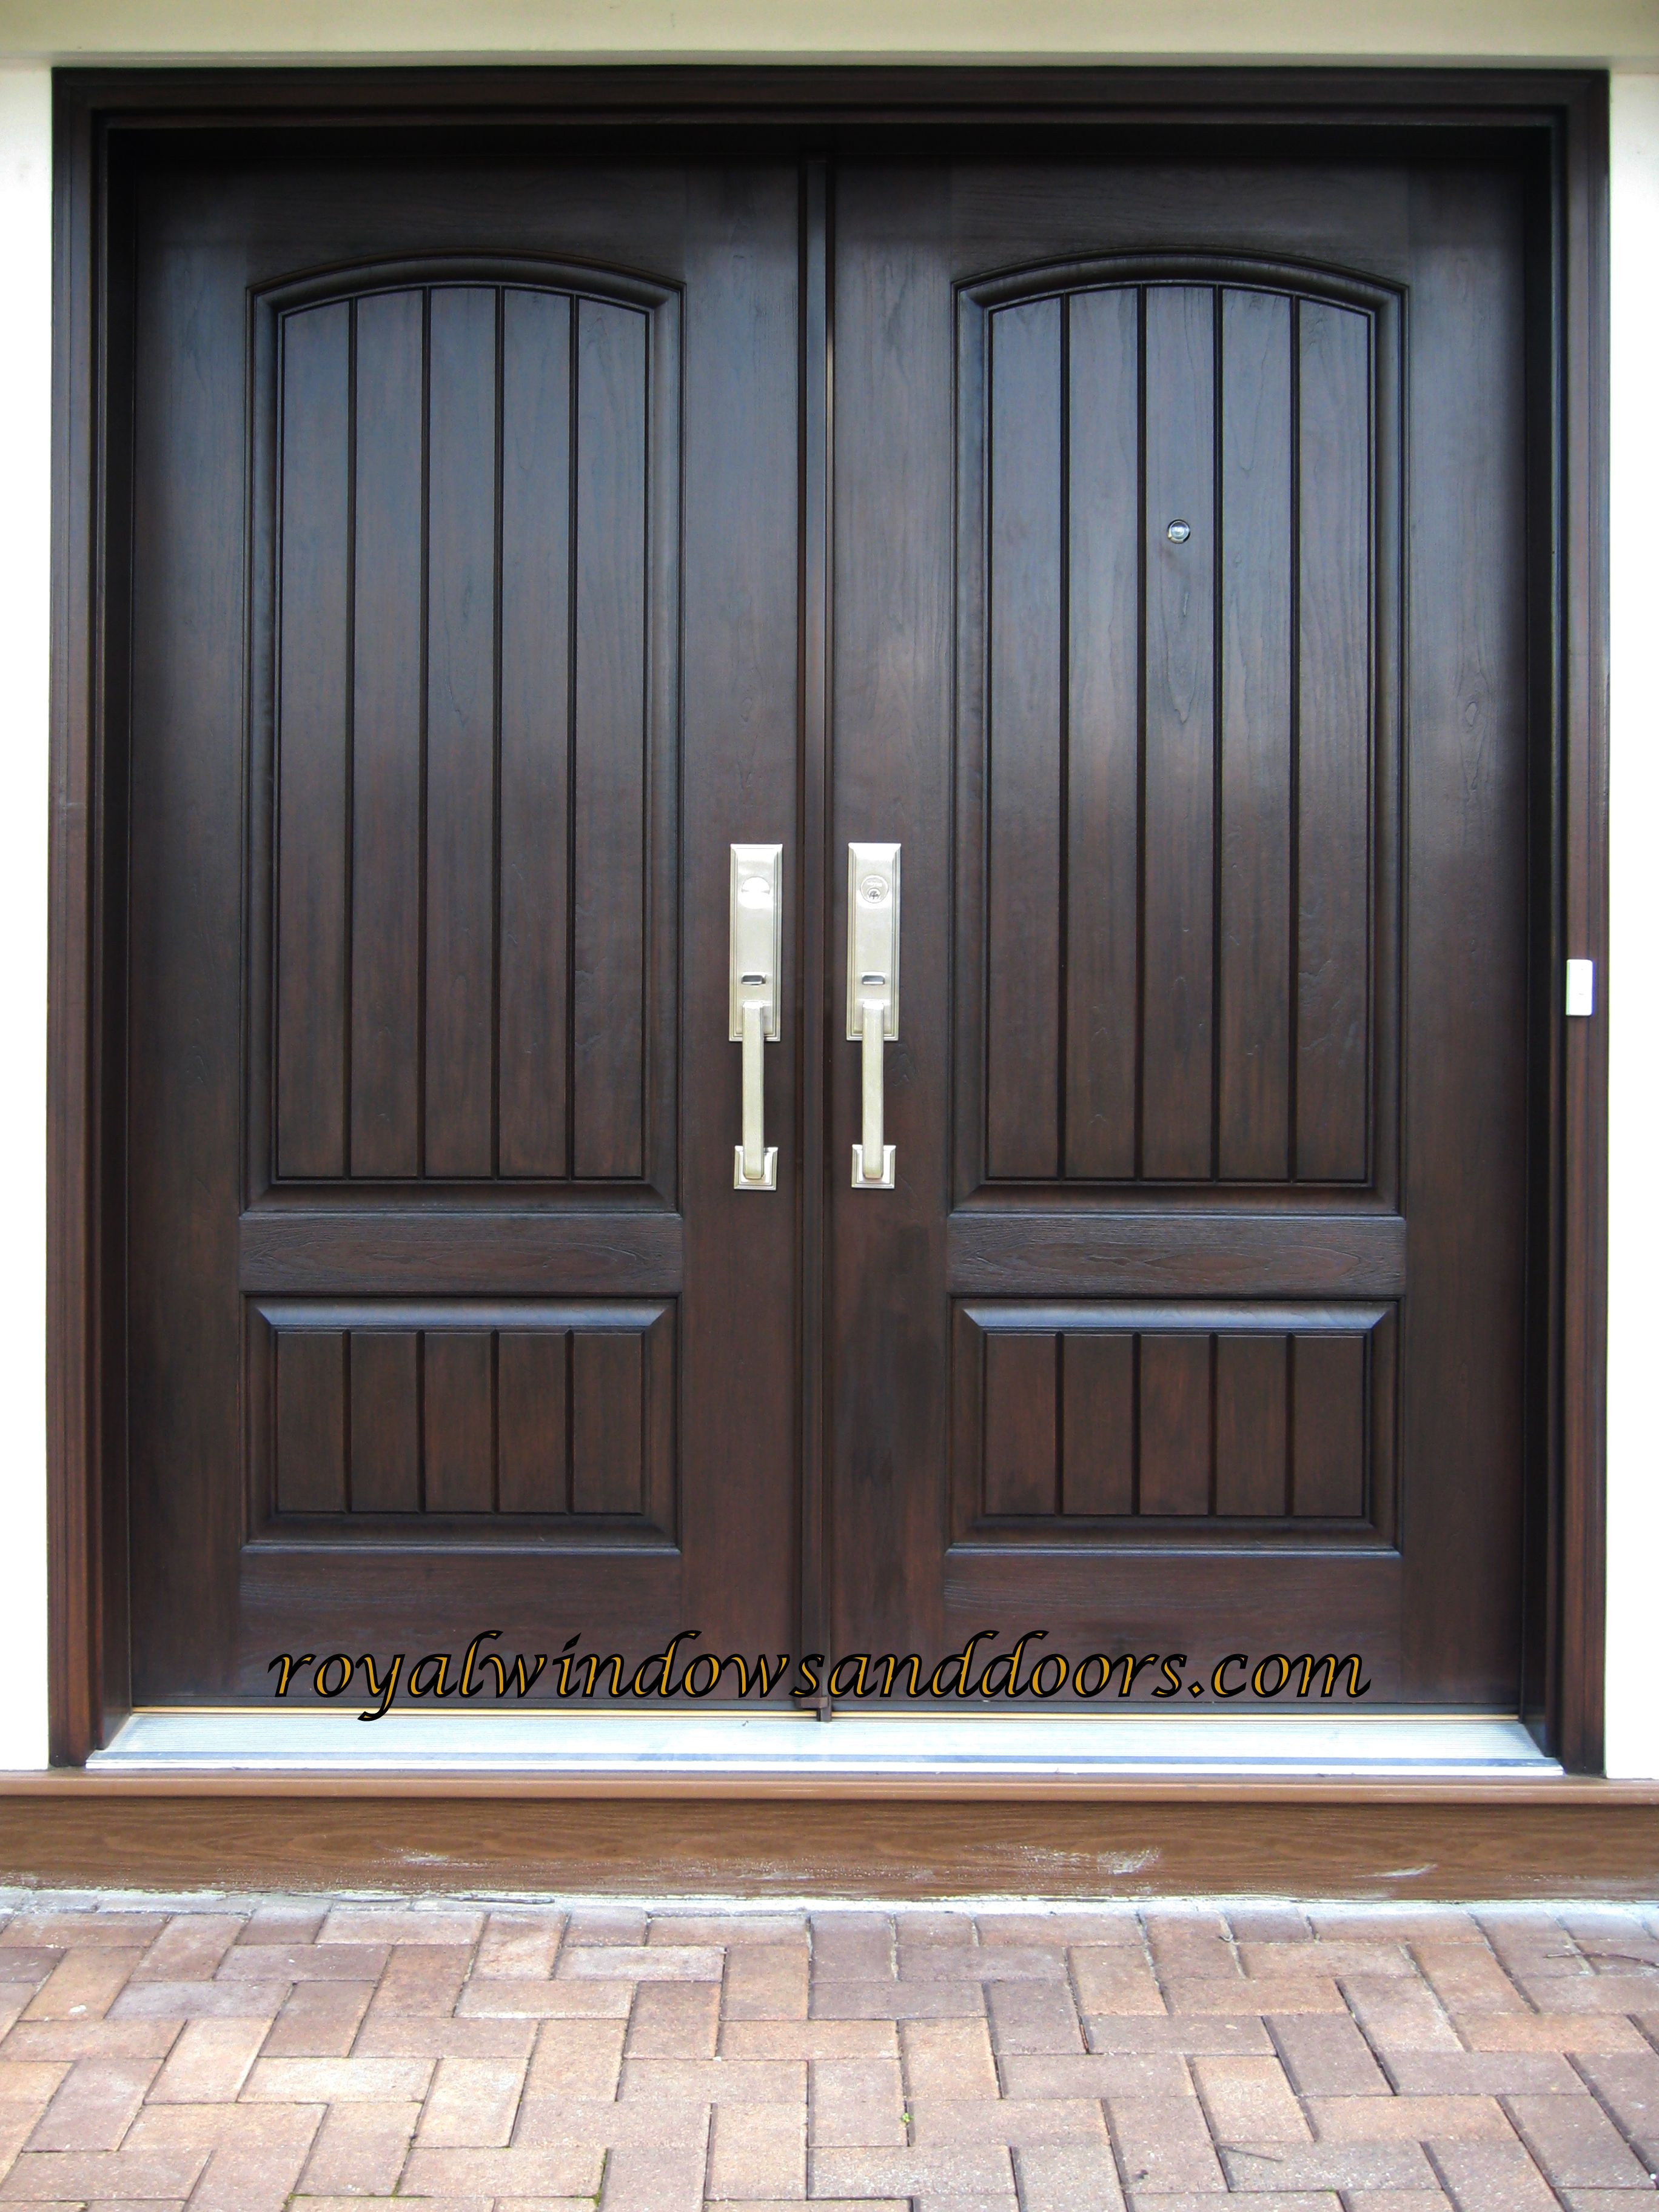 Double Plank Door Fiberglass Painted in dark wood finish Long